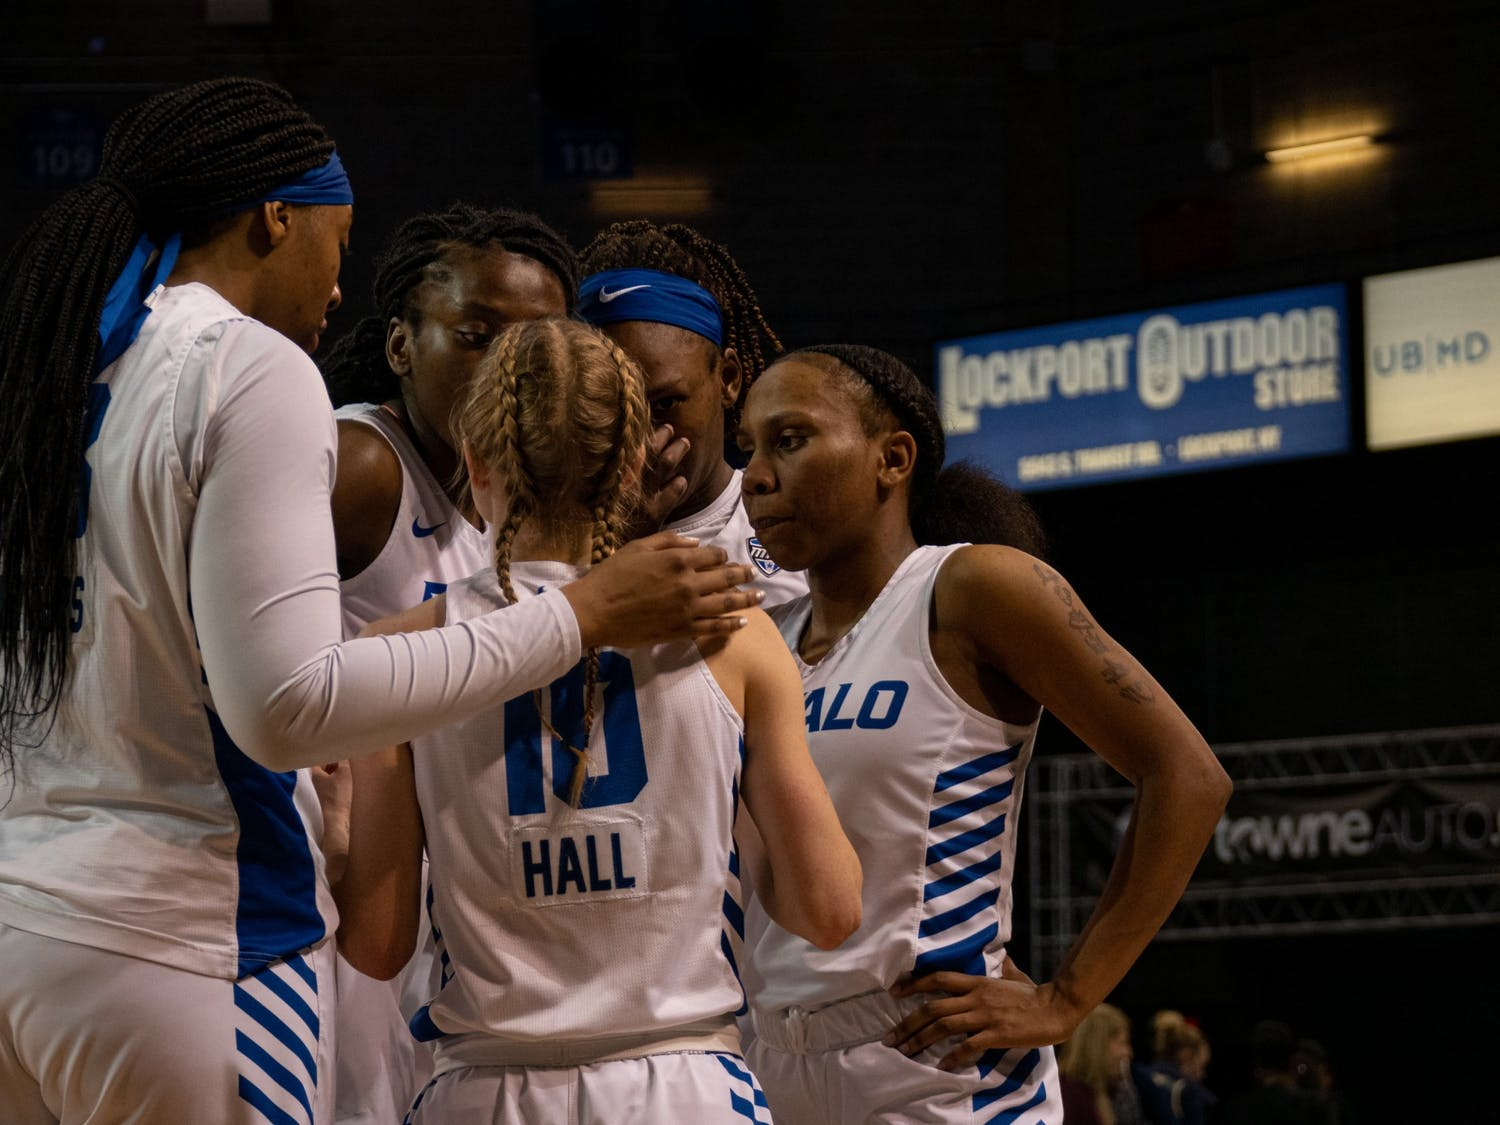 Despite a scrappy effort from UB, the No. 1 seed Falcons' hot shooting was too much to handle.